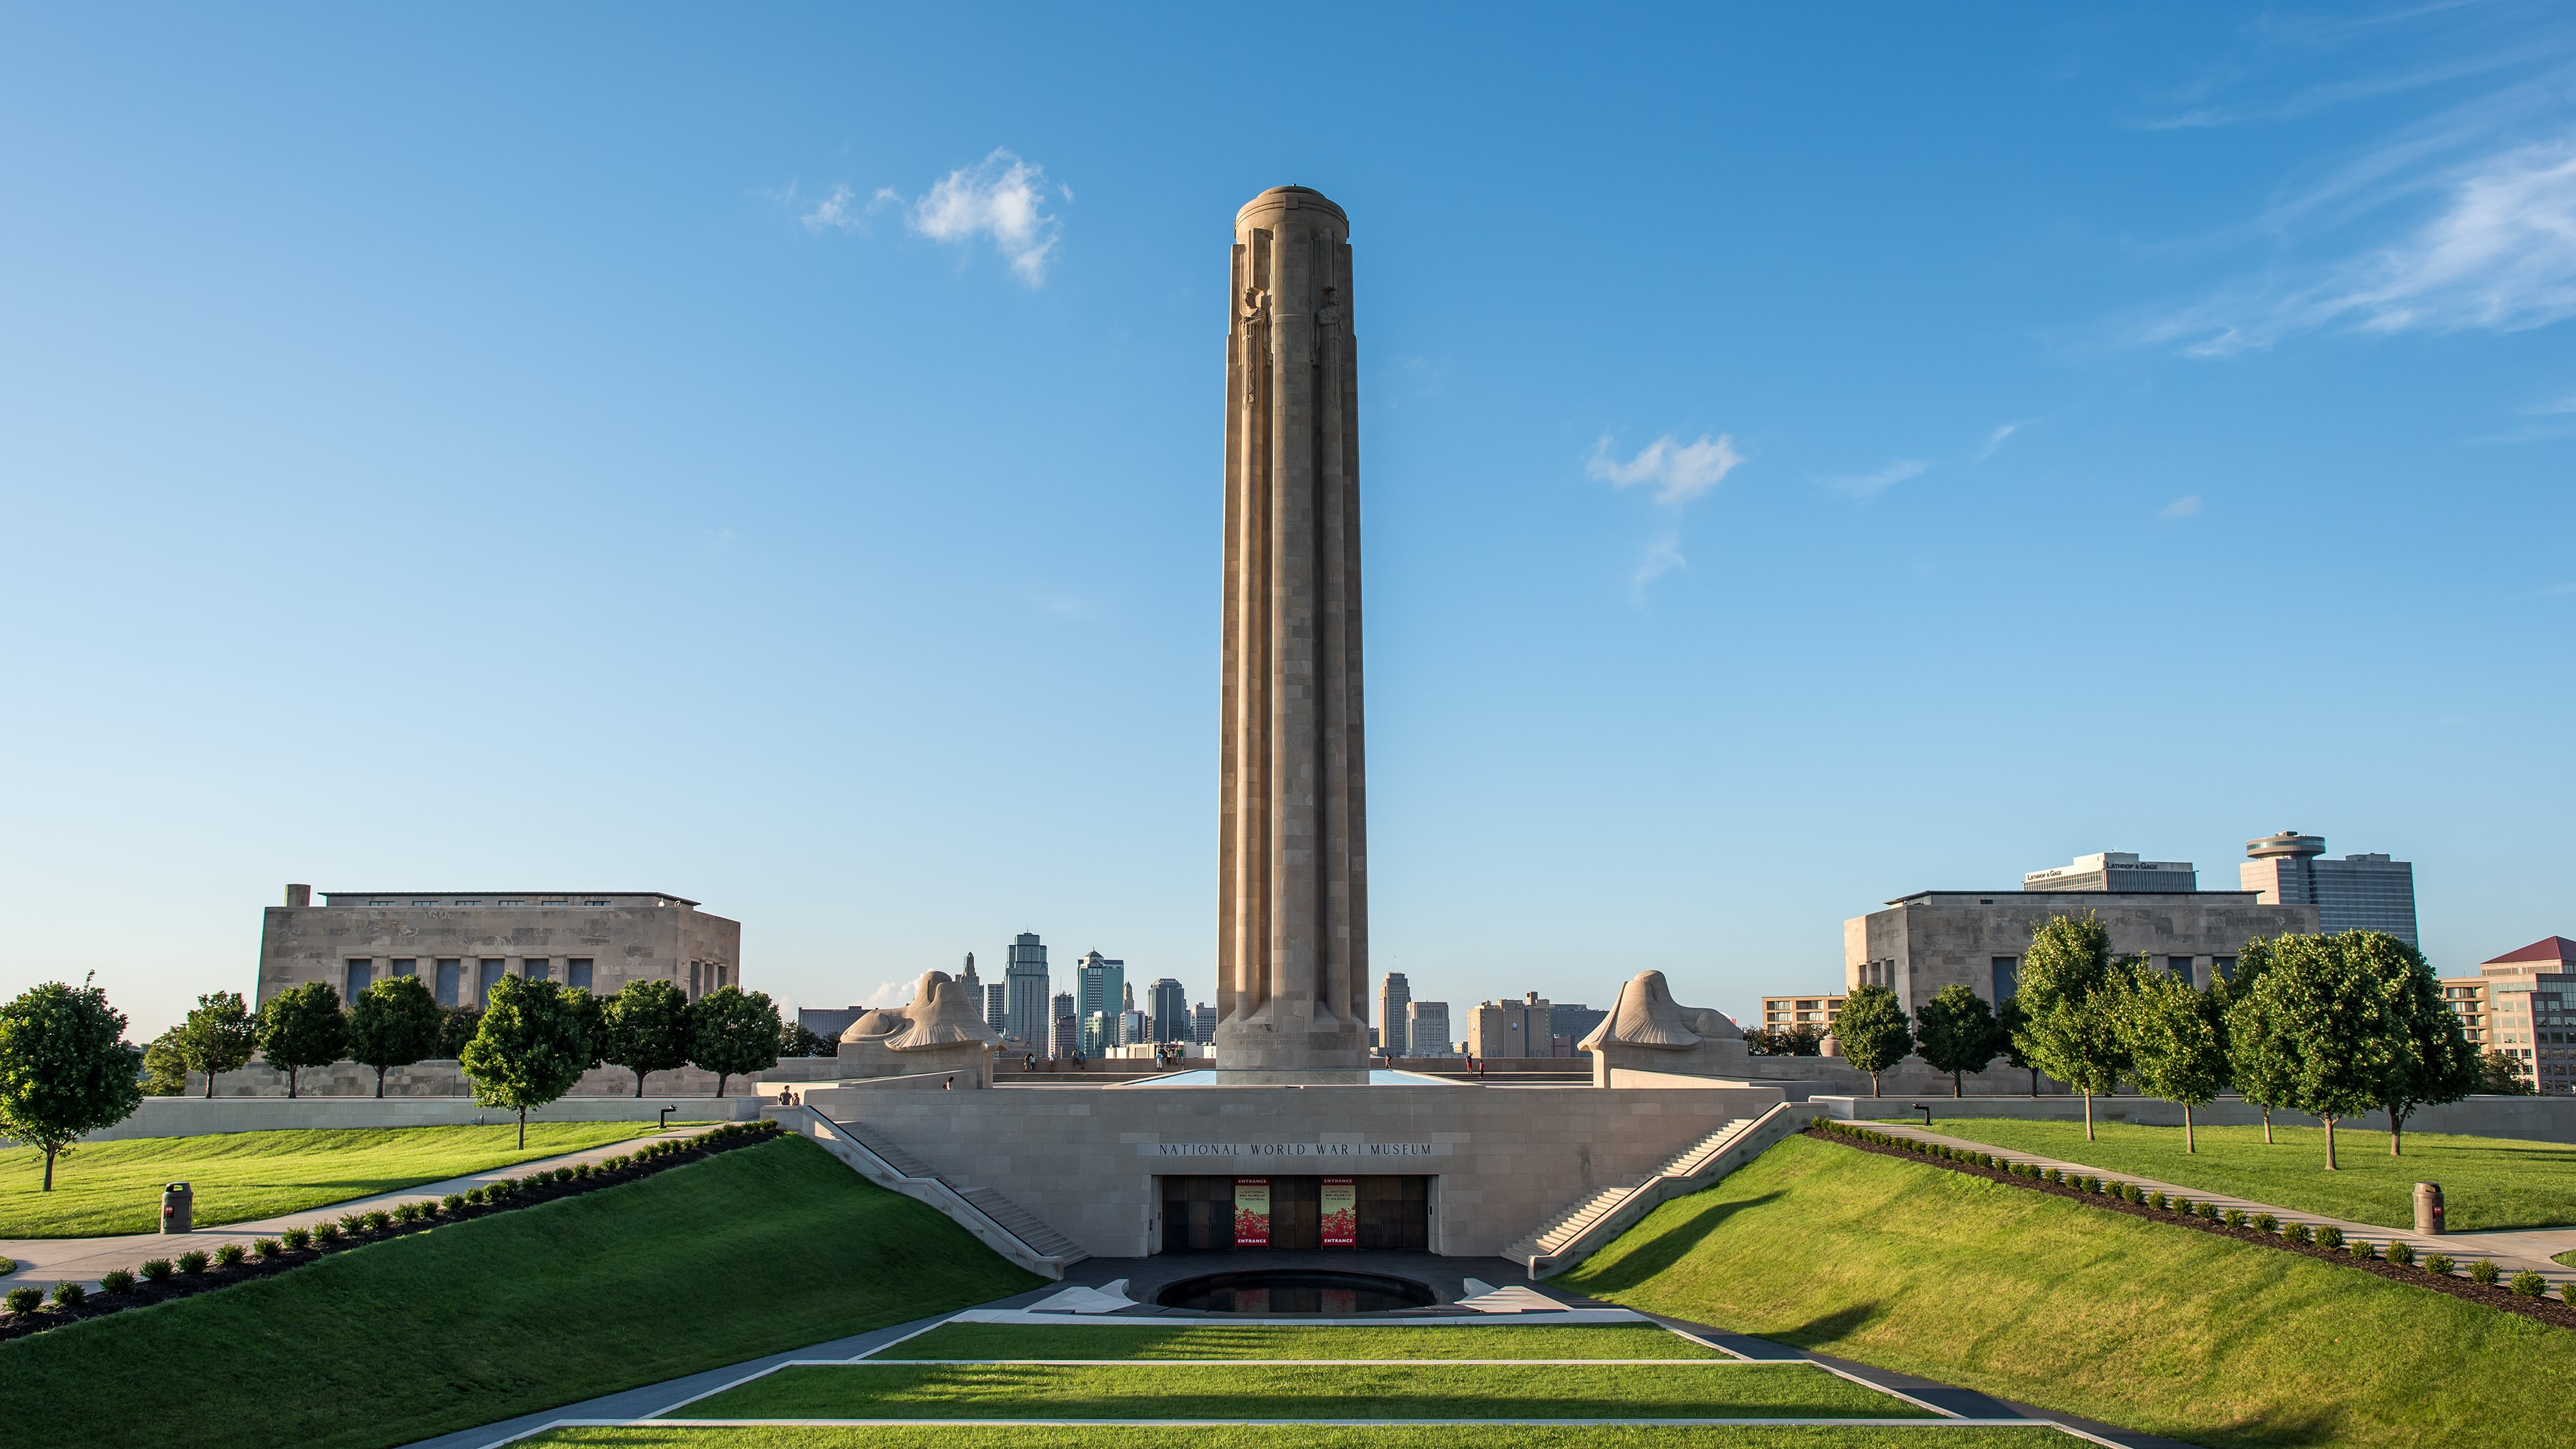 The National World War I Museum and Memorial